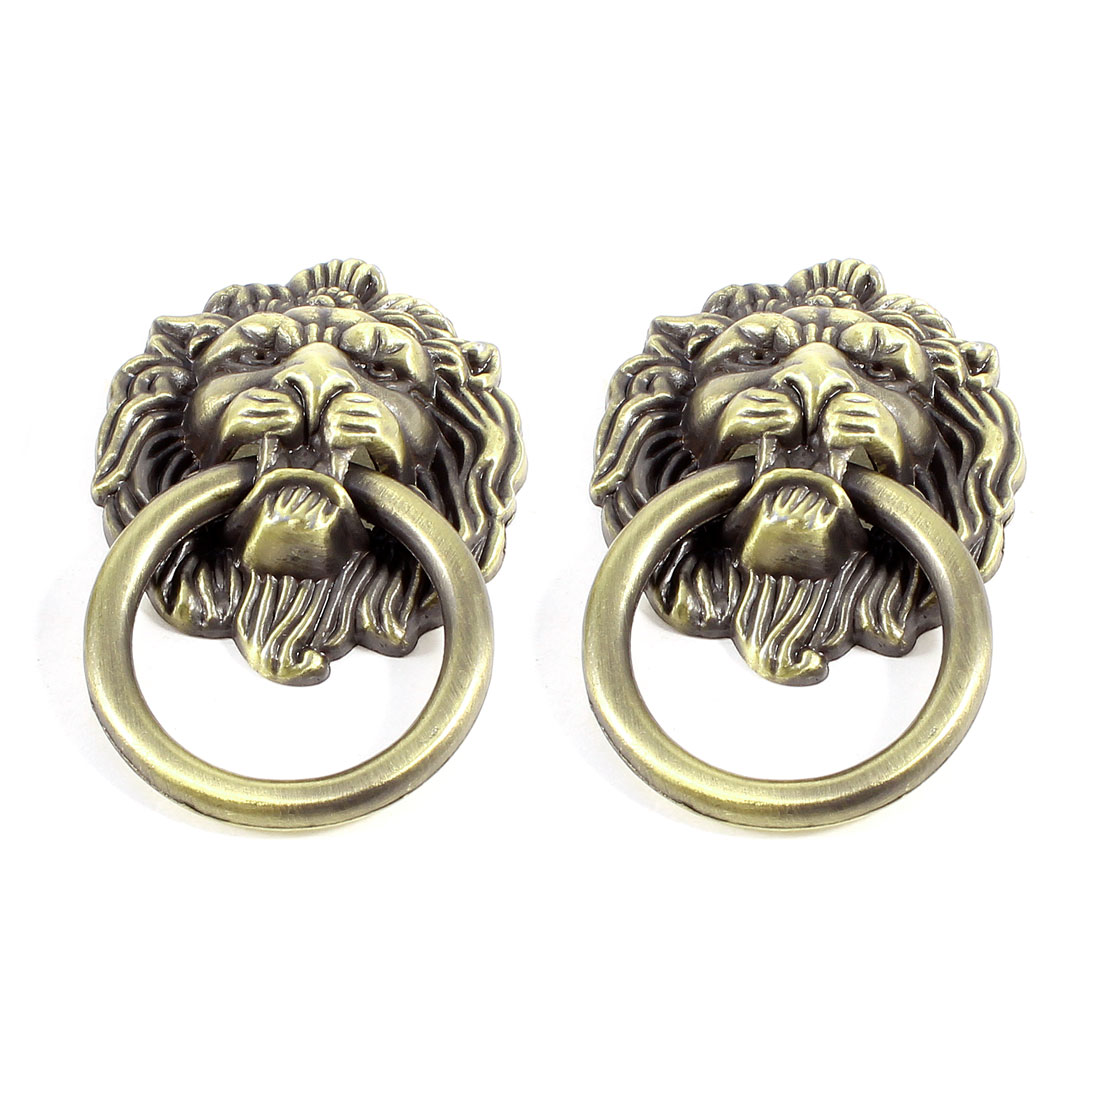 Bronze Tone Metal Lion Head Design Drawer Cabinet Gate Door Pull Handle Knobs Pair